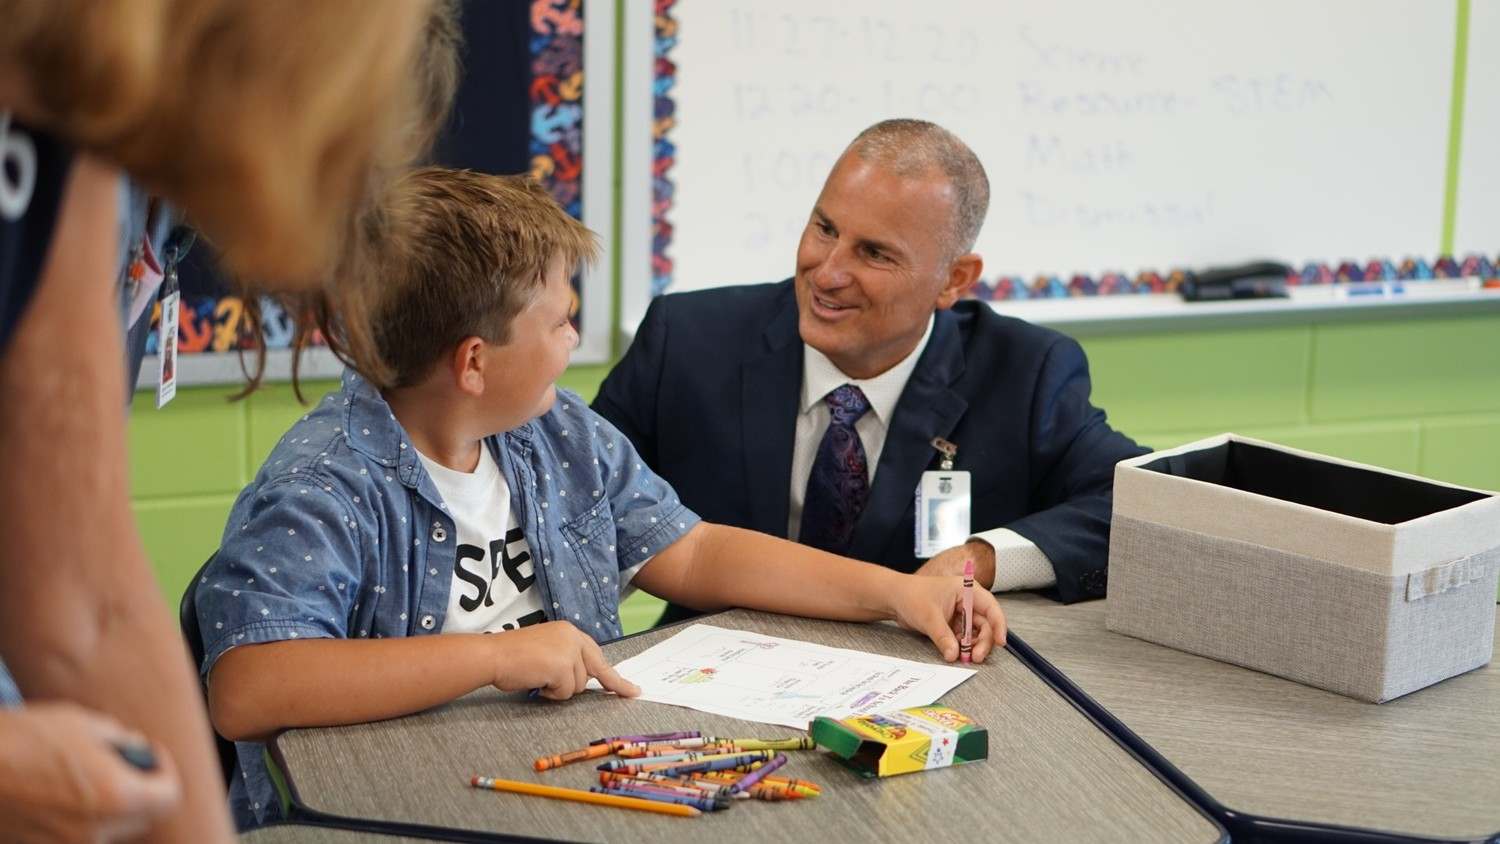 Clay County School Superintendent Addison Davis shares a smile with a Discovery Oaks Elementary student on the first day of school, which also marked the school's grand opening.